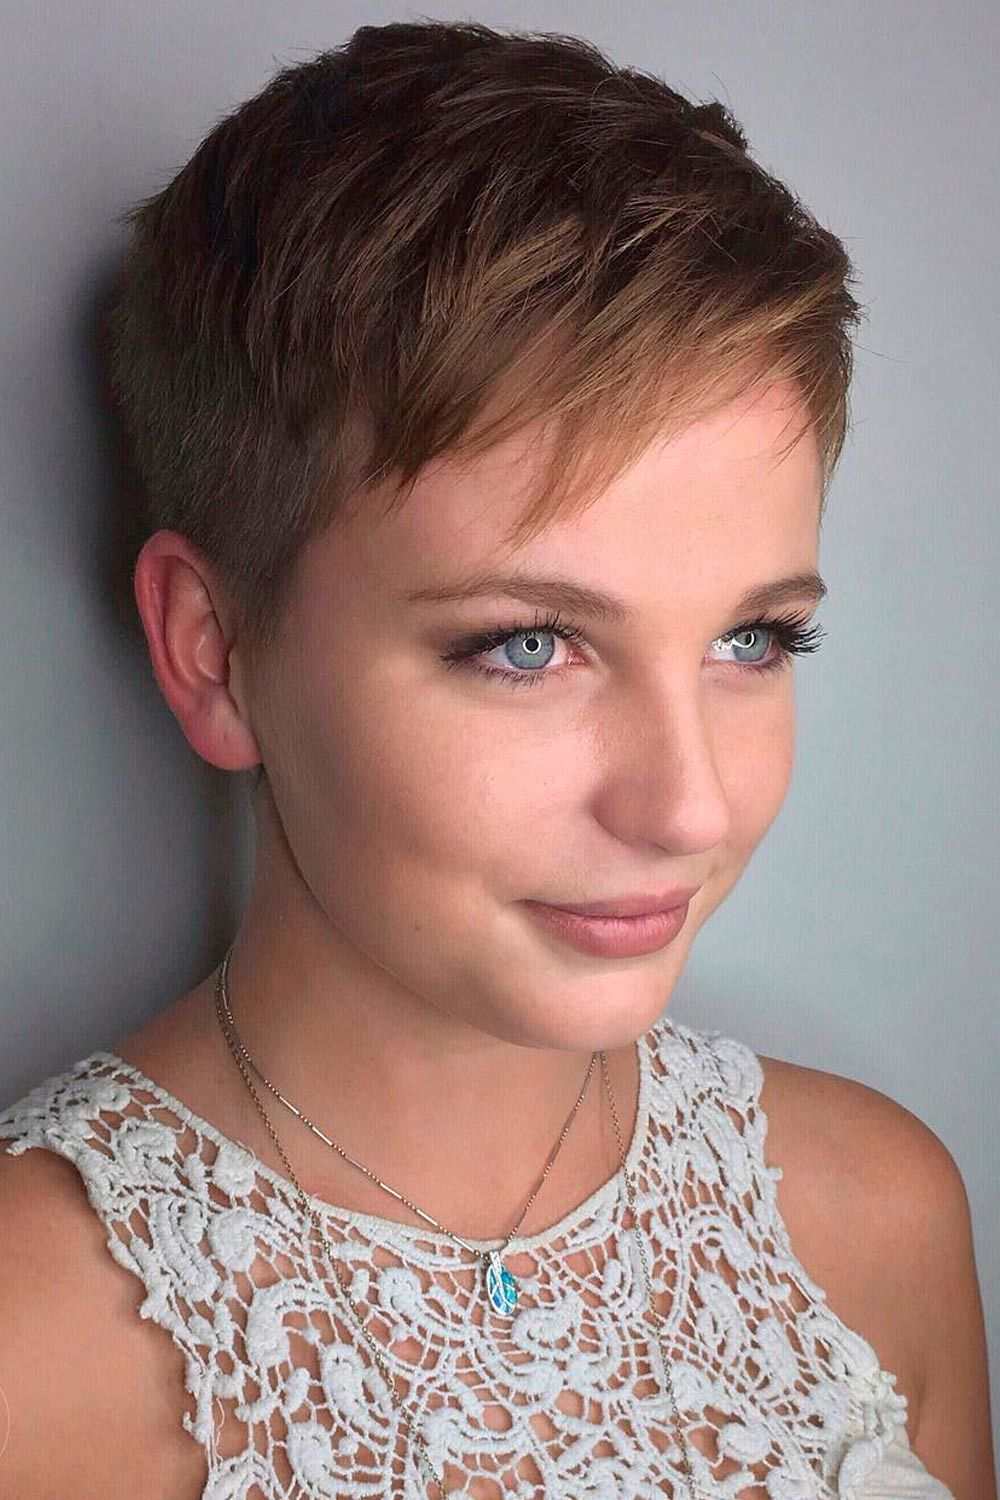 Pixie Hairstyles For Round Faces, short hairstyles for older round faces, short layered hairstyles for round faces